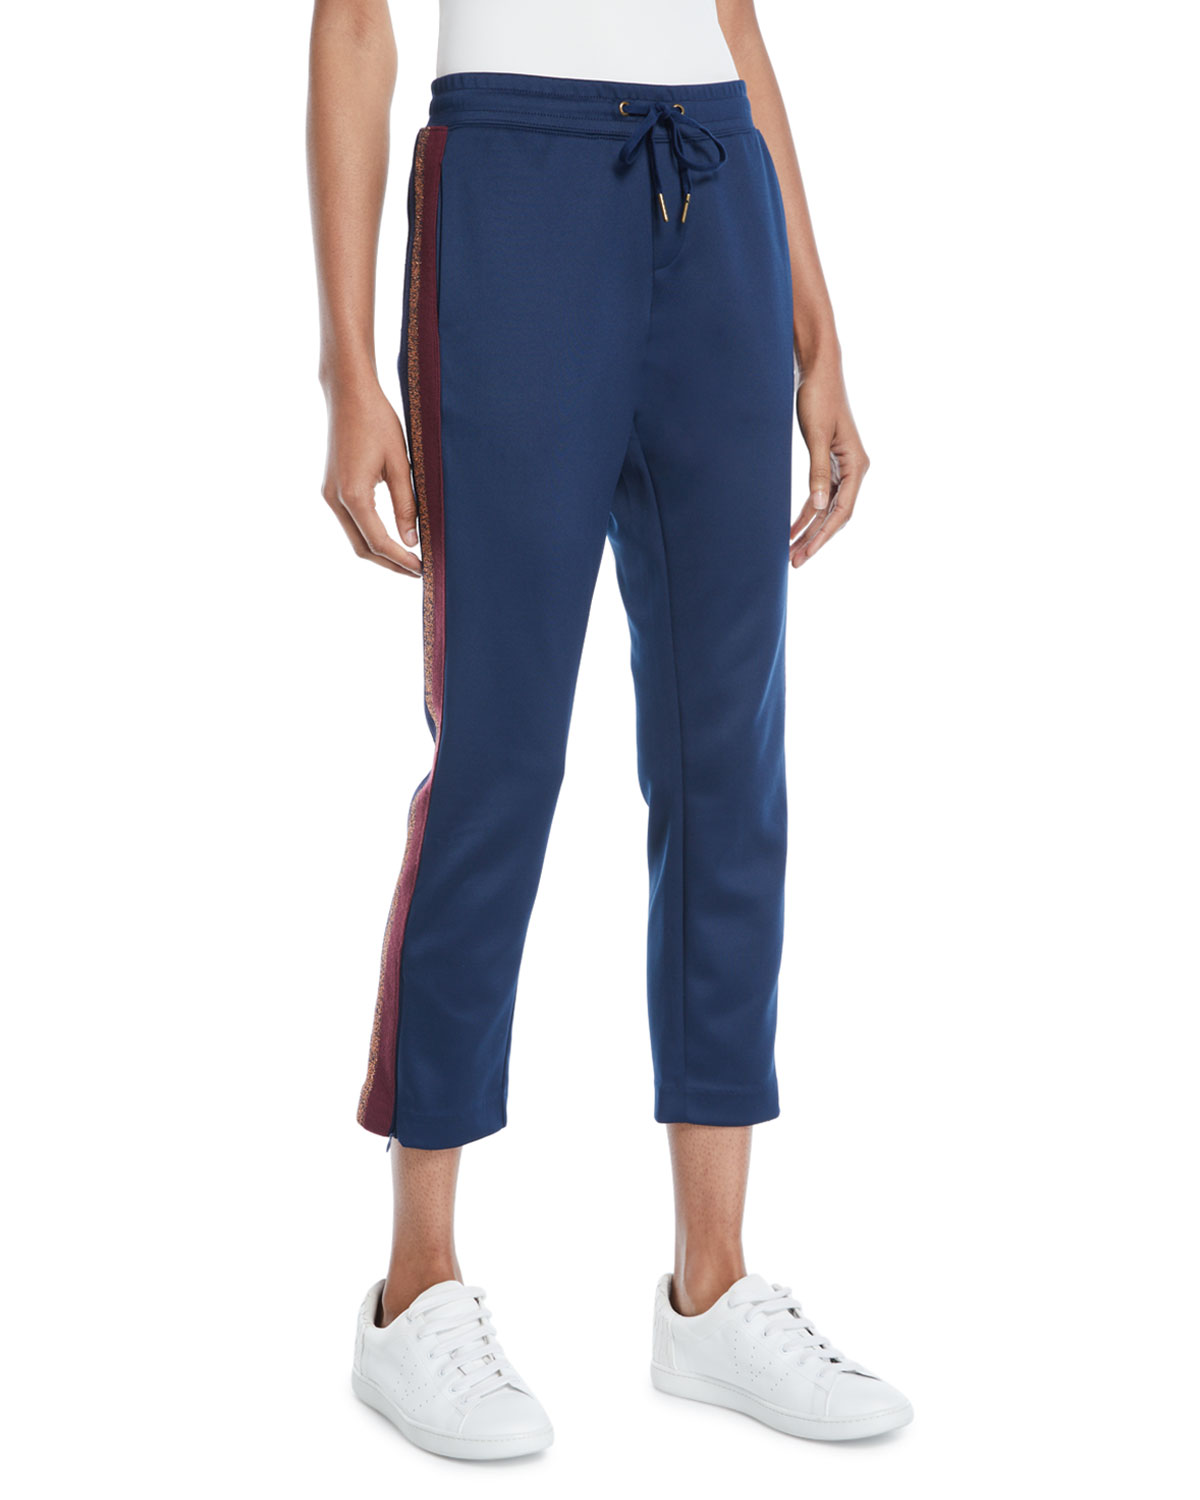 Cropped Drawstring Sweatpants W/ Metallic Stripes in Navy